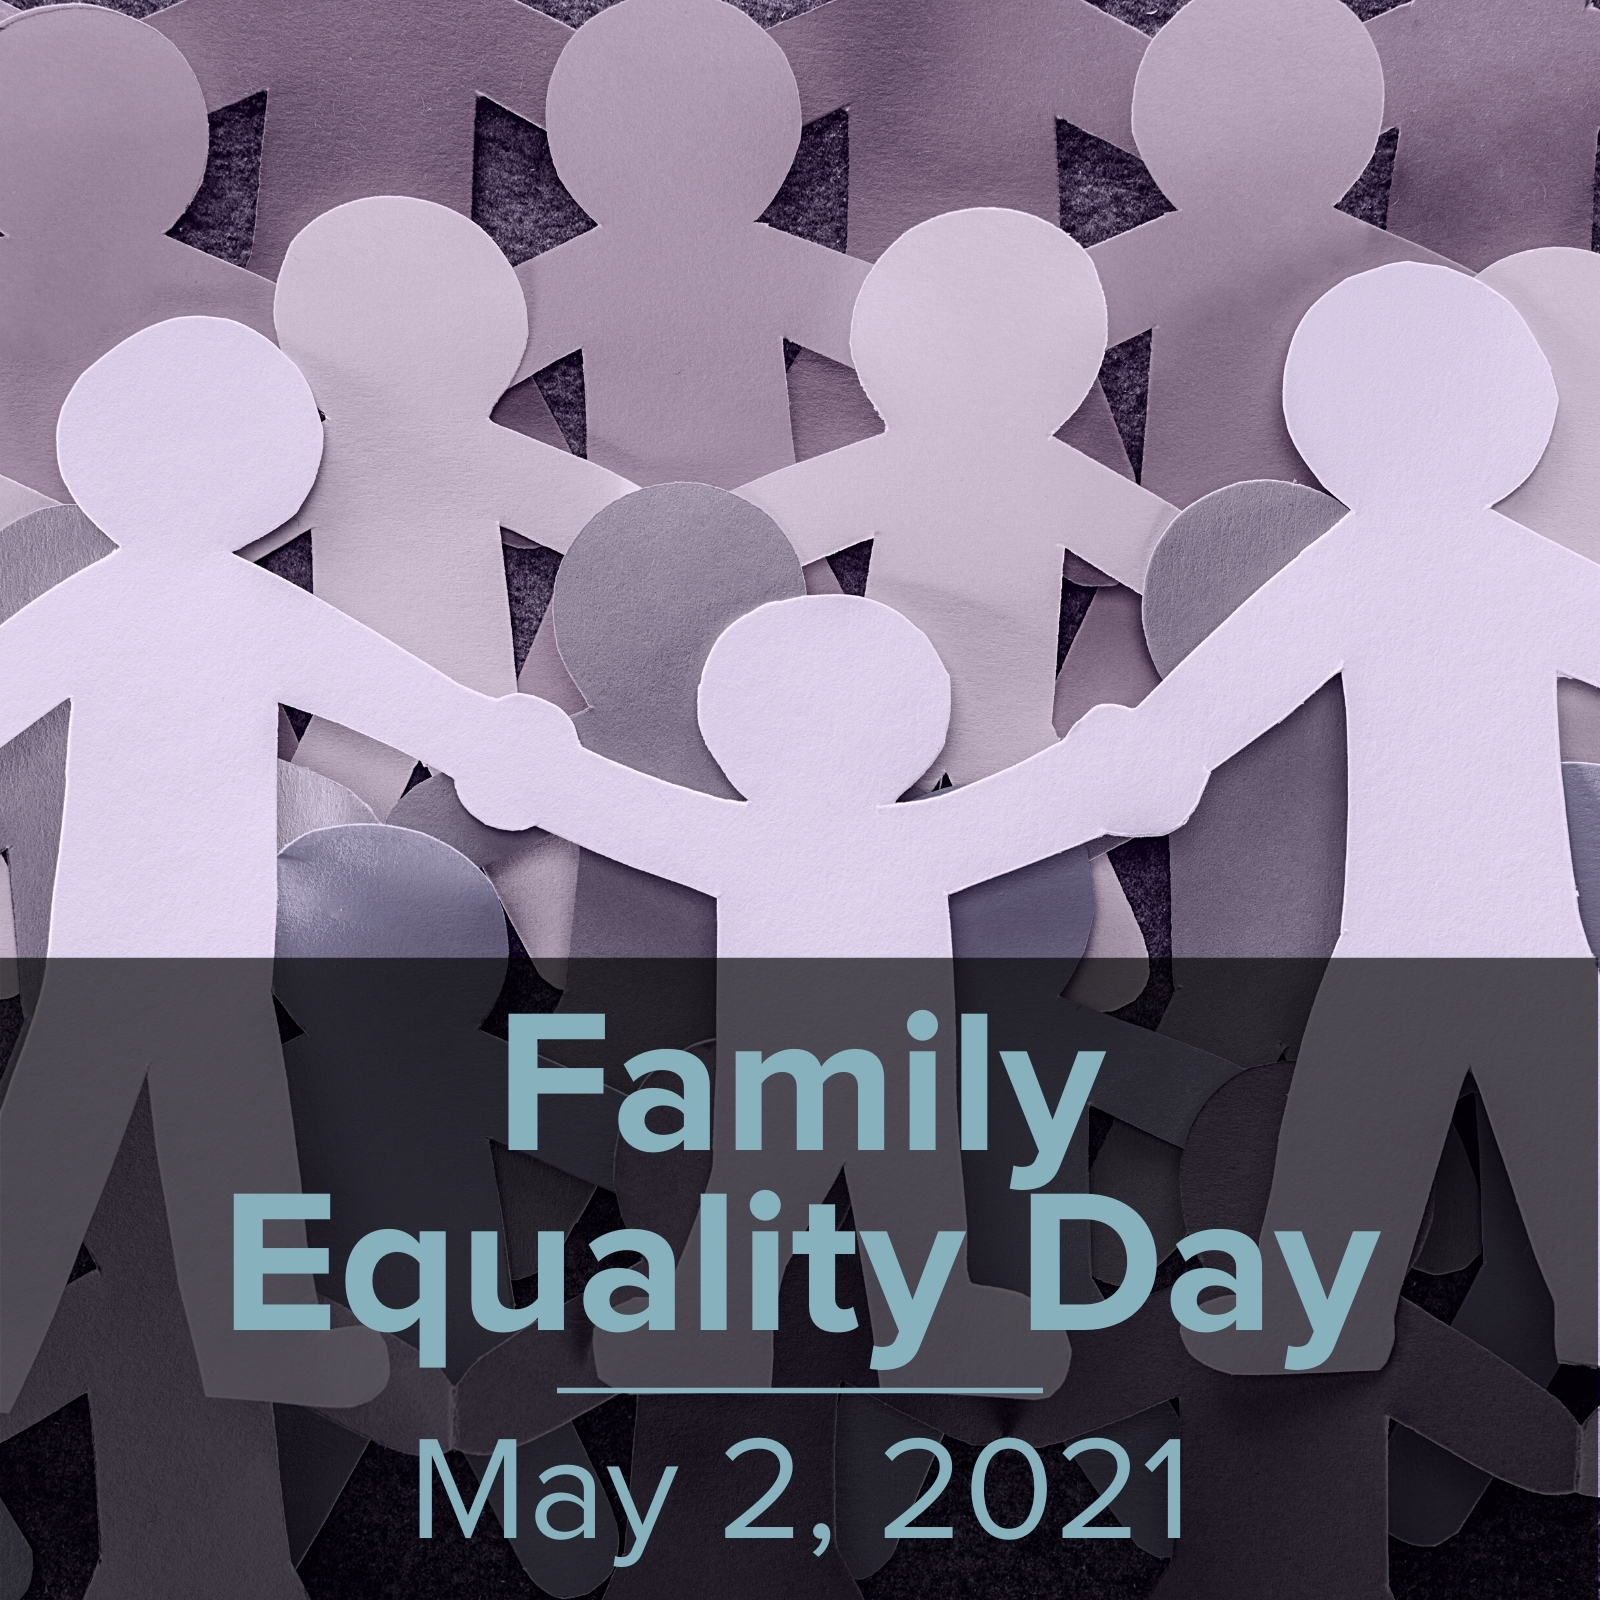 Family_Equality_Day.jpg